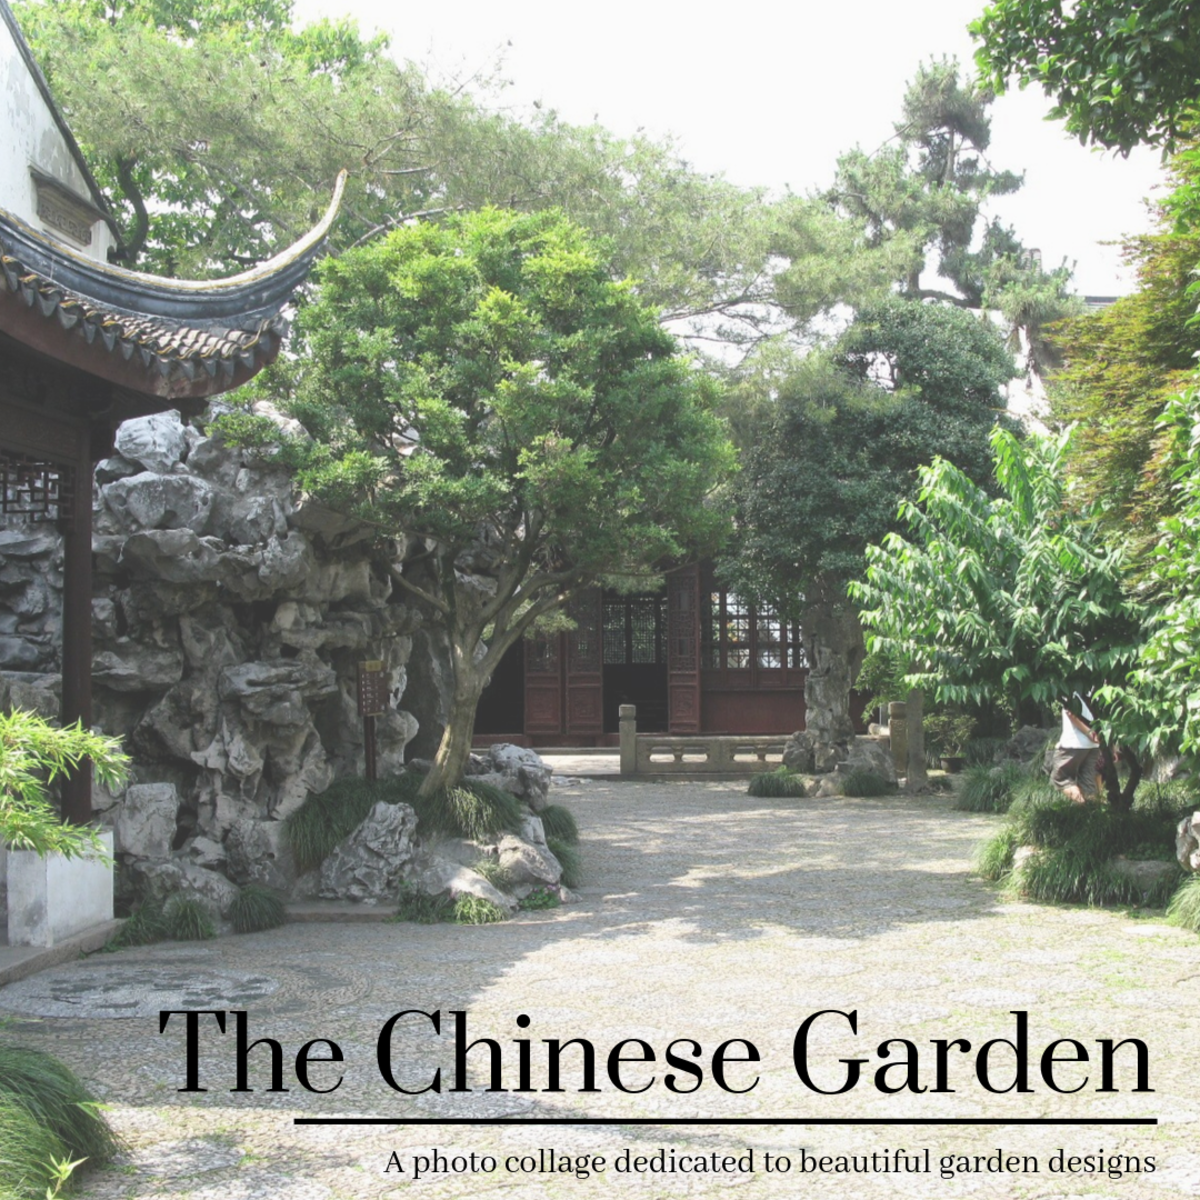 The Chinese Garden: A Photo Collage